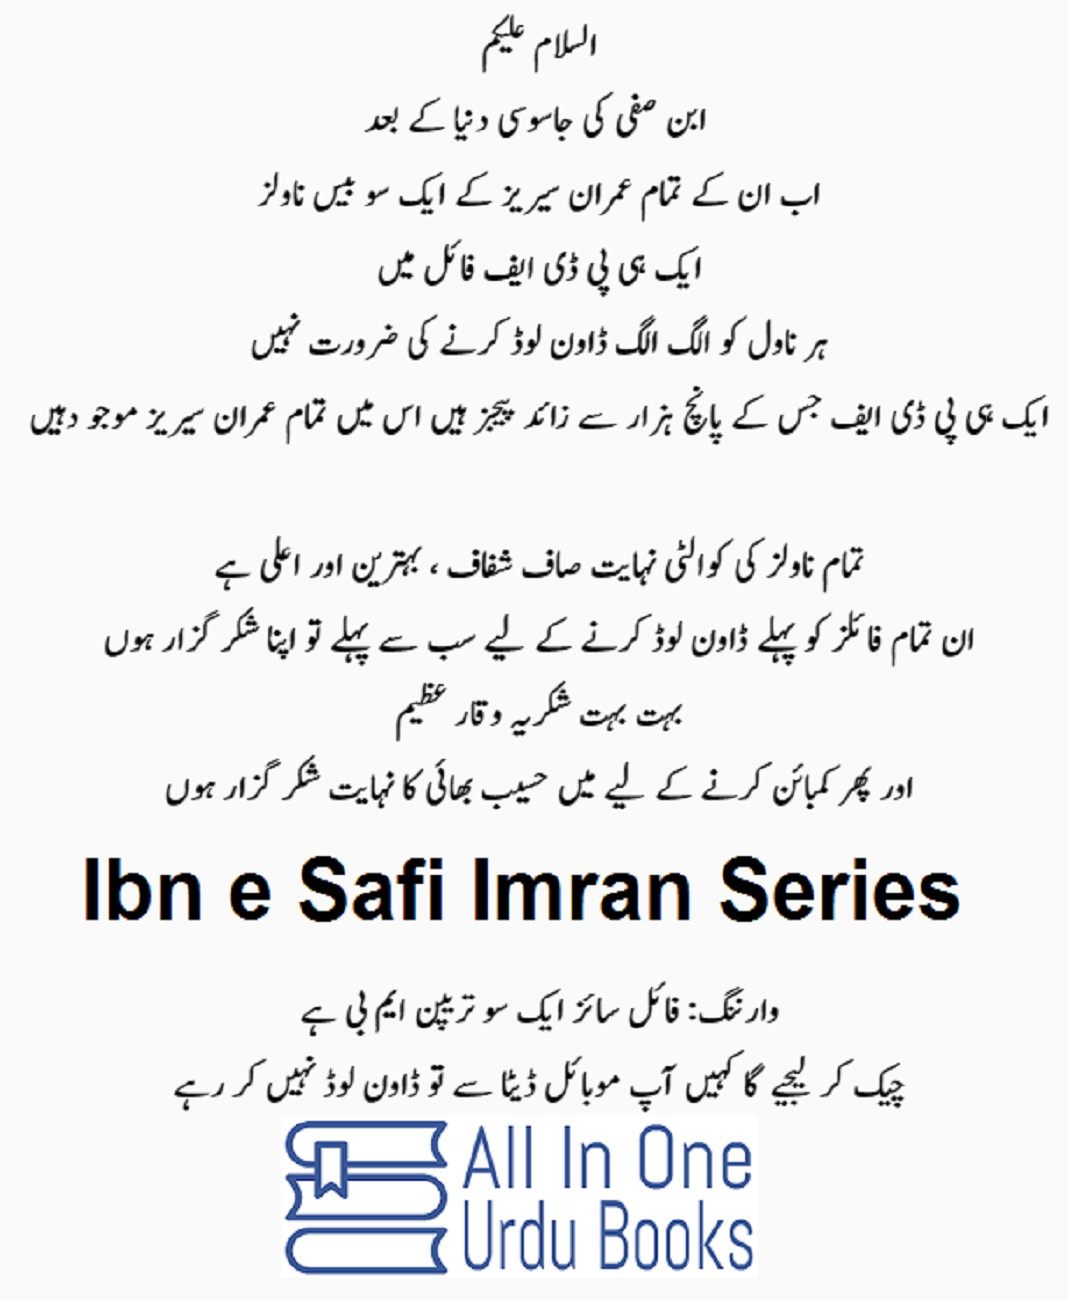 Imran Series By Ibn E Safiplete One Pdf Download Read Online, All Spy  Detective